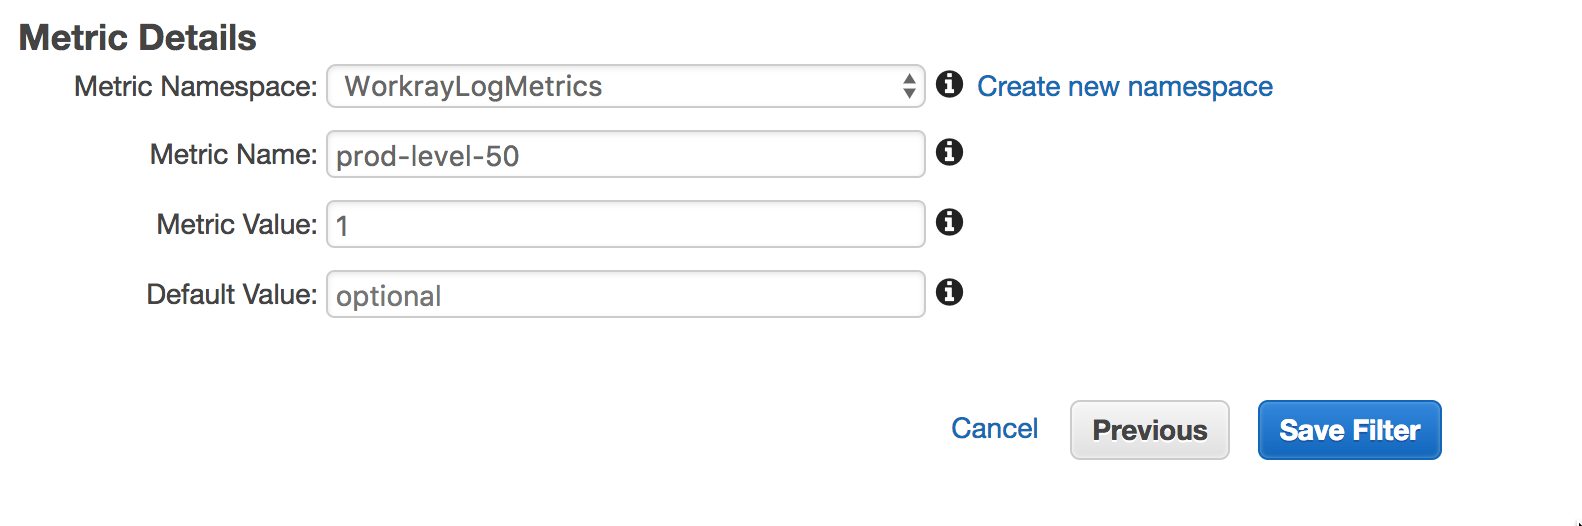 Please add support for default values in Cloudwatch Metric